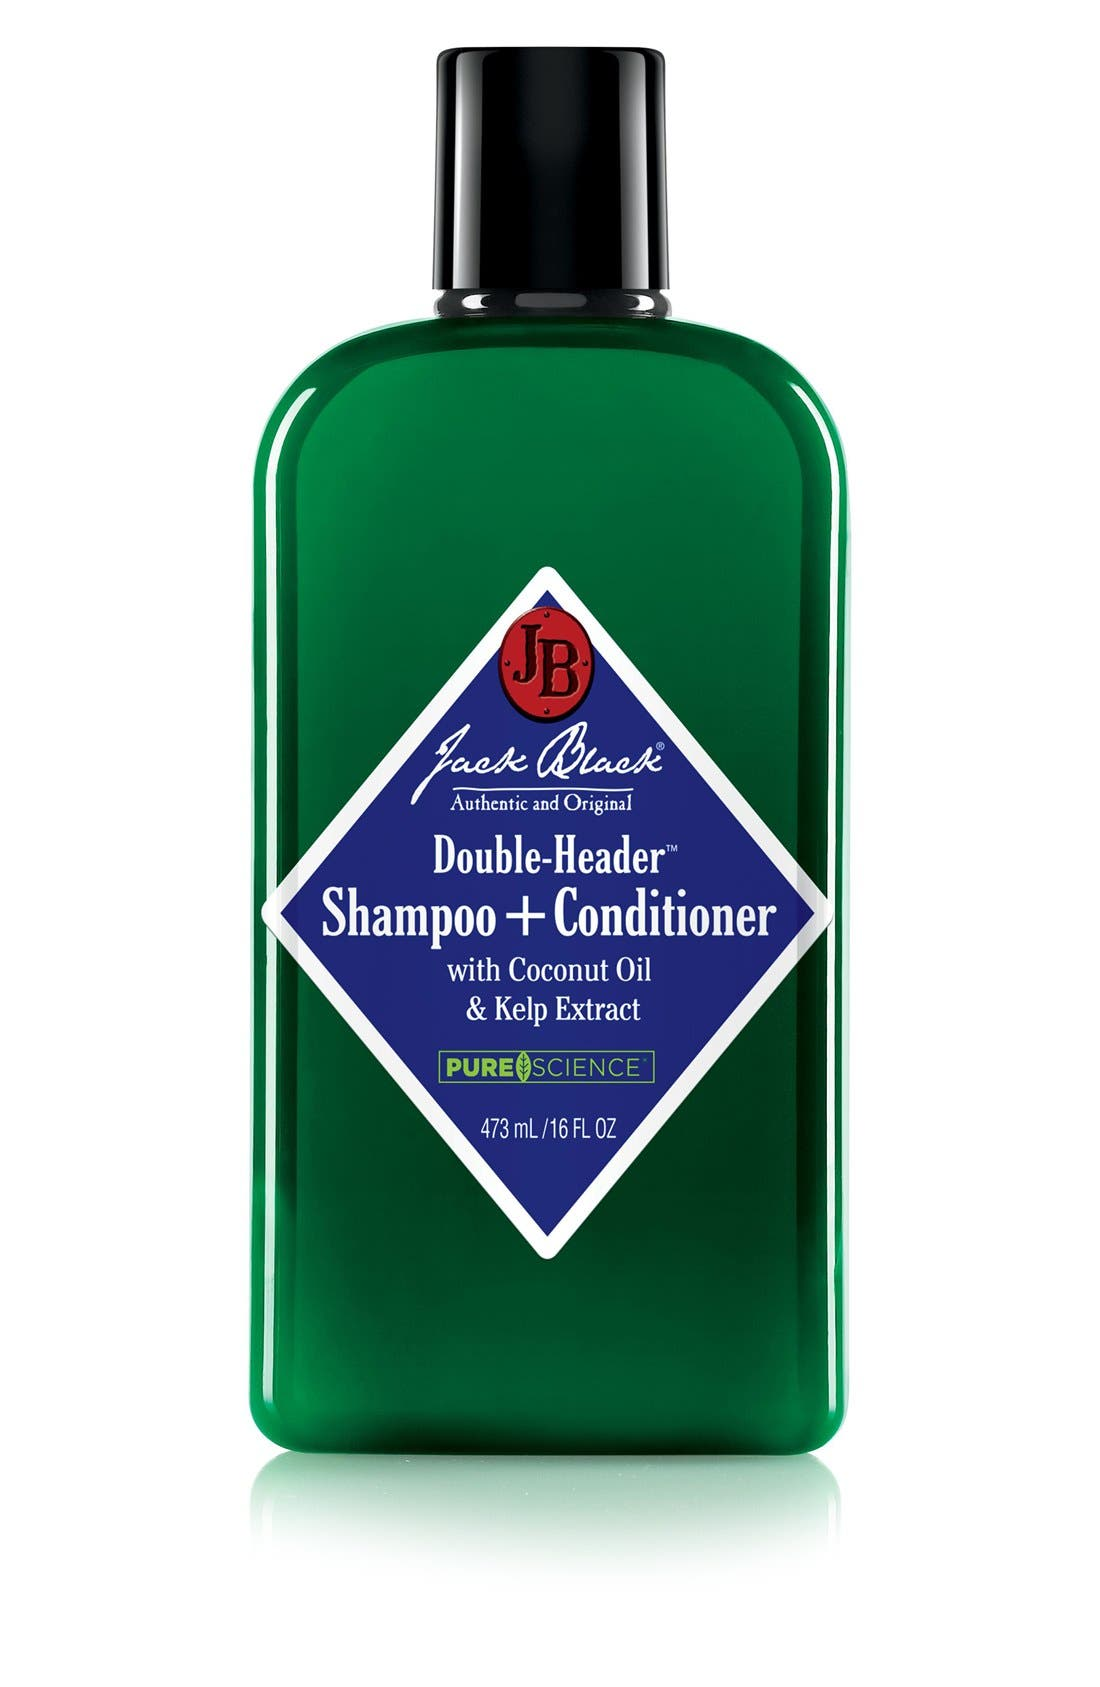 Jack Black 'Double-Header™' Shampoo + Conditioner